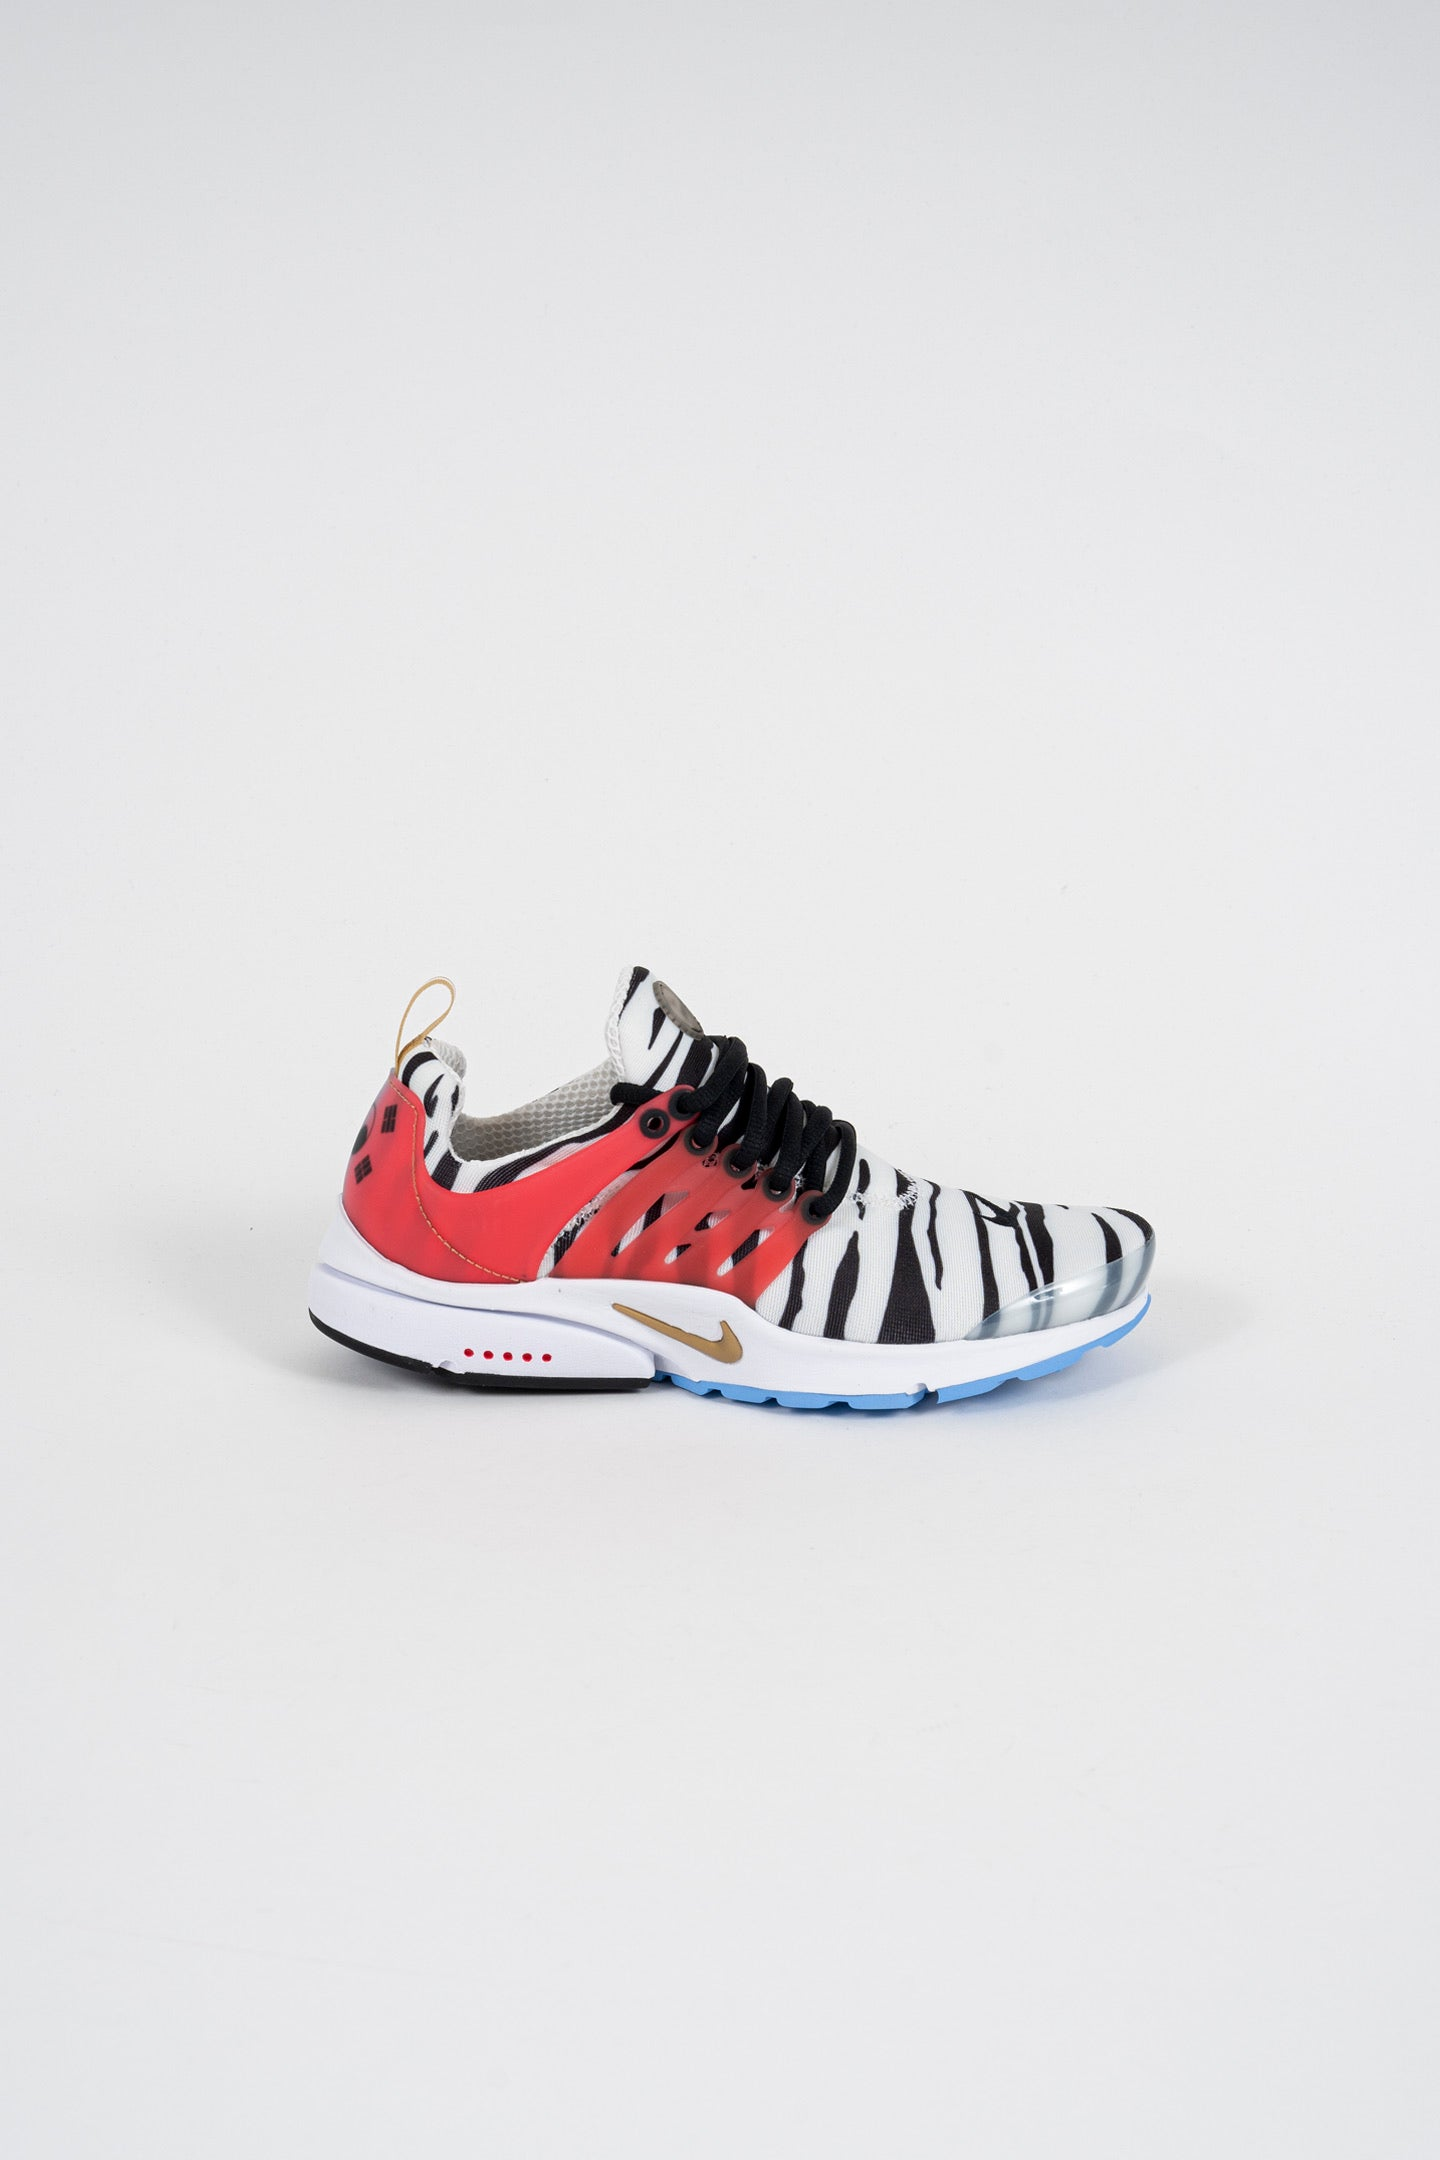 Nike Air Presto south korea